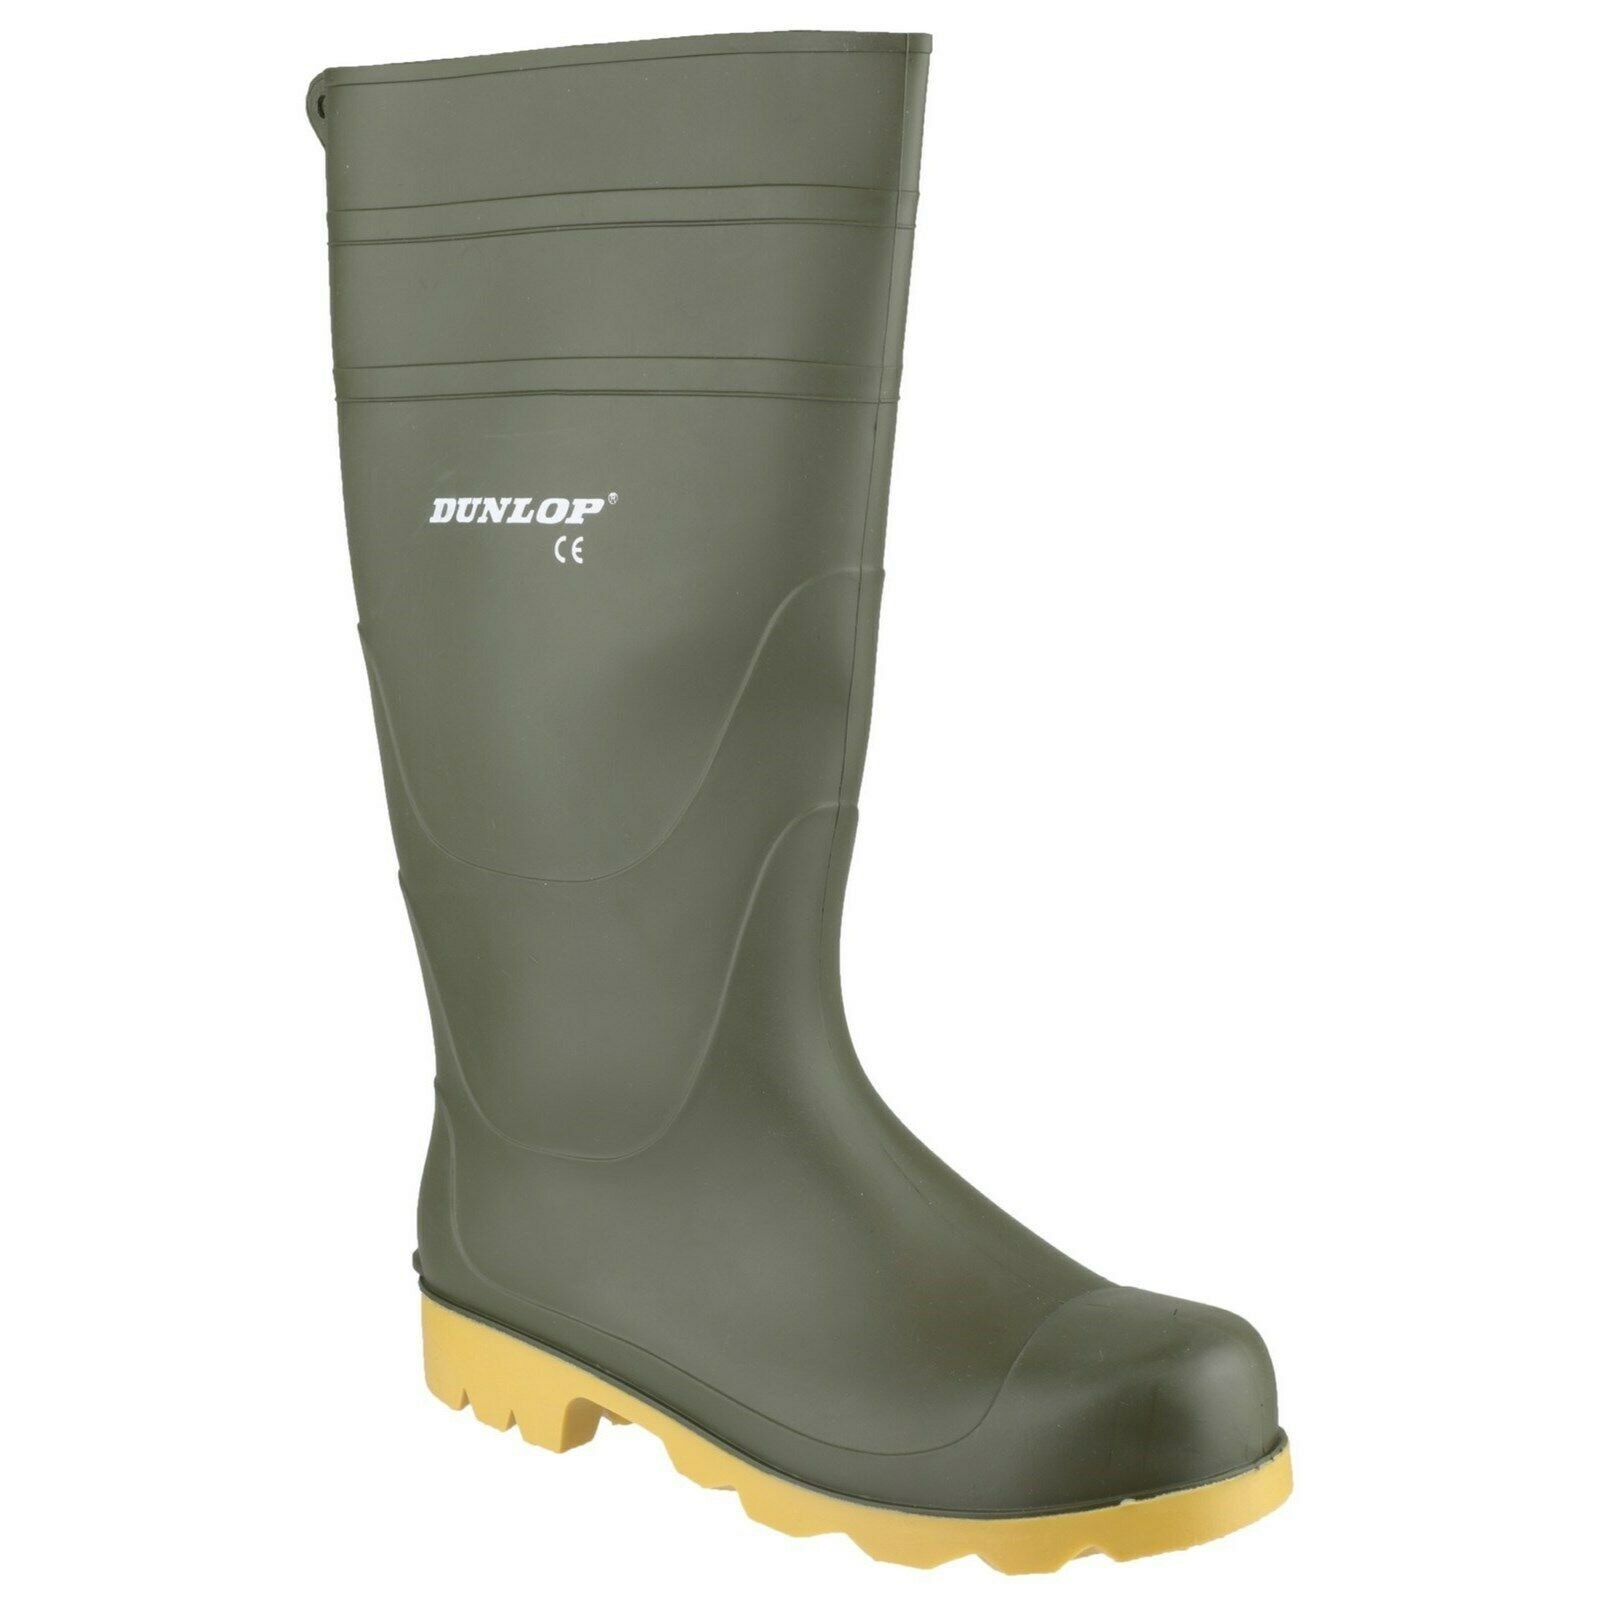 Dunlop Universal Non-Safety Wellington Boots Green (Sizes 6-12)